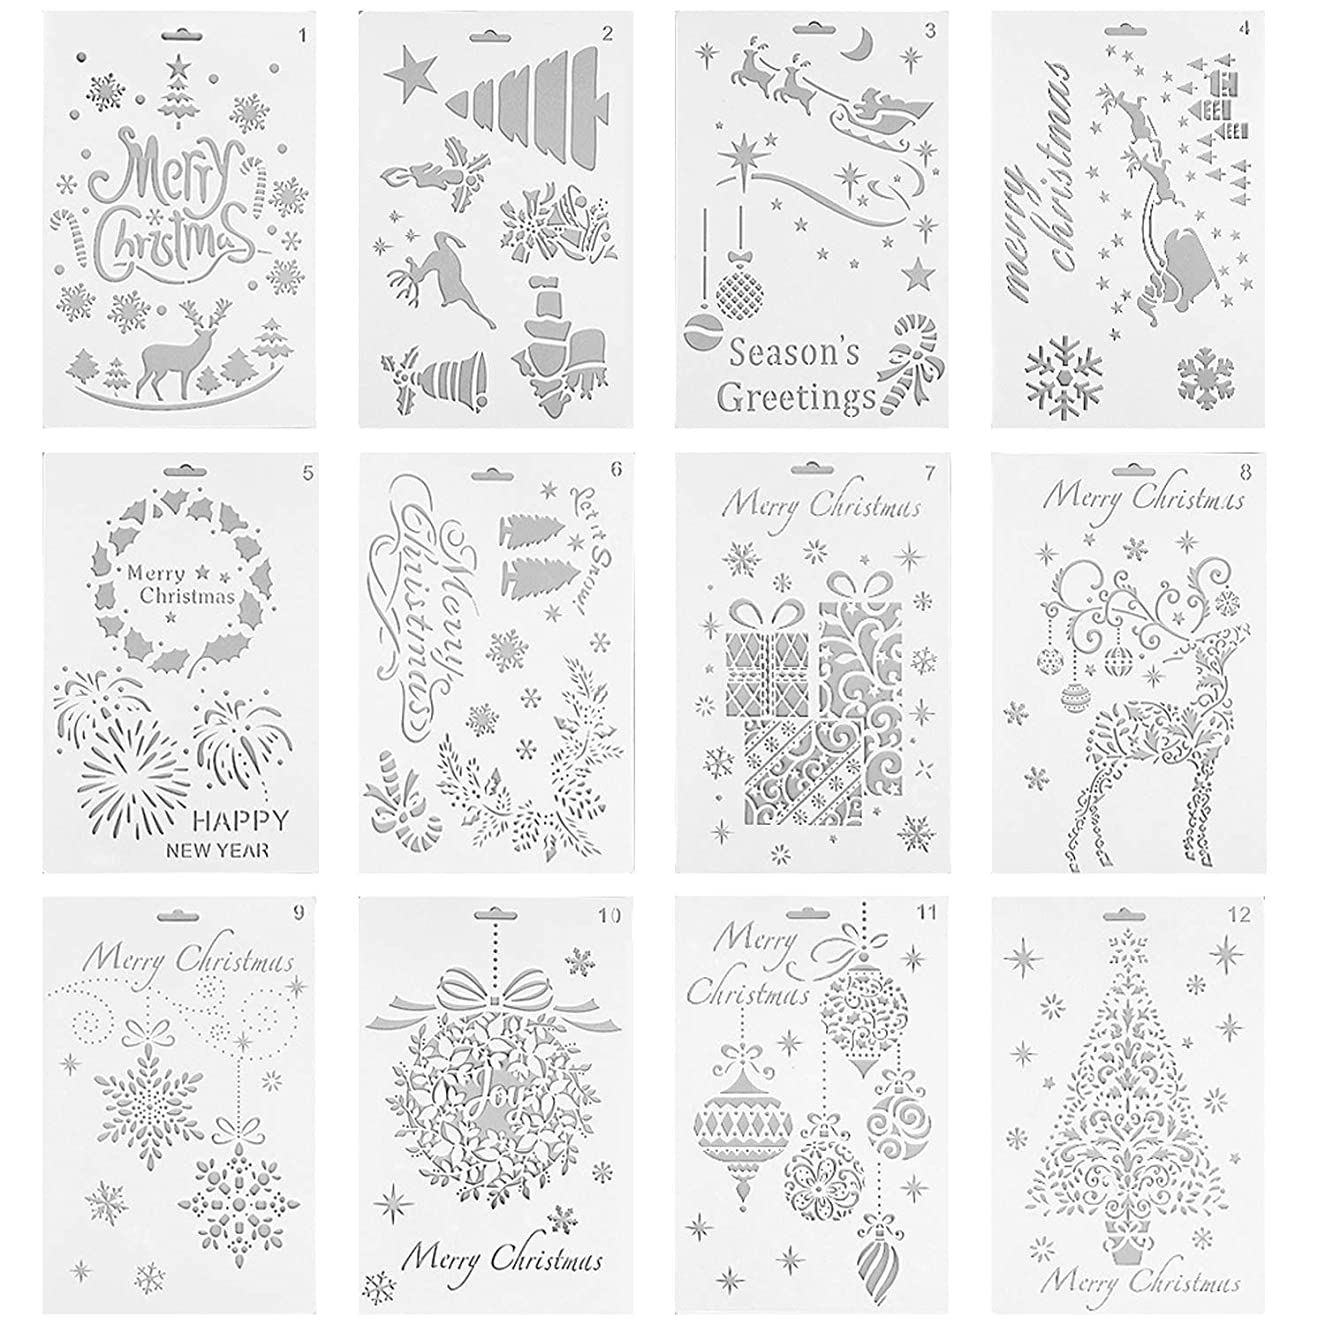 Lystin 12Pcs Christmas Painting Stencils, Plastic Stencil Bullet Journal Stencil Template Christmas Themes Santa Claus Christmas Tree Snowflakes Reindeers for Card DIY Drawing Craft Project 7